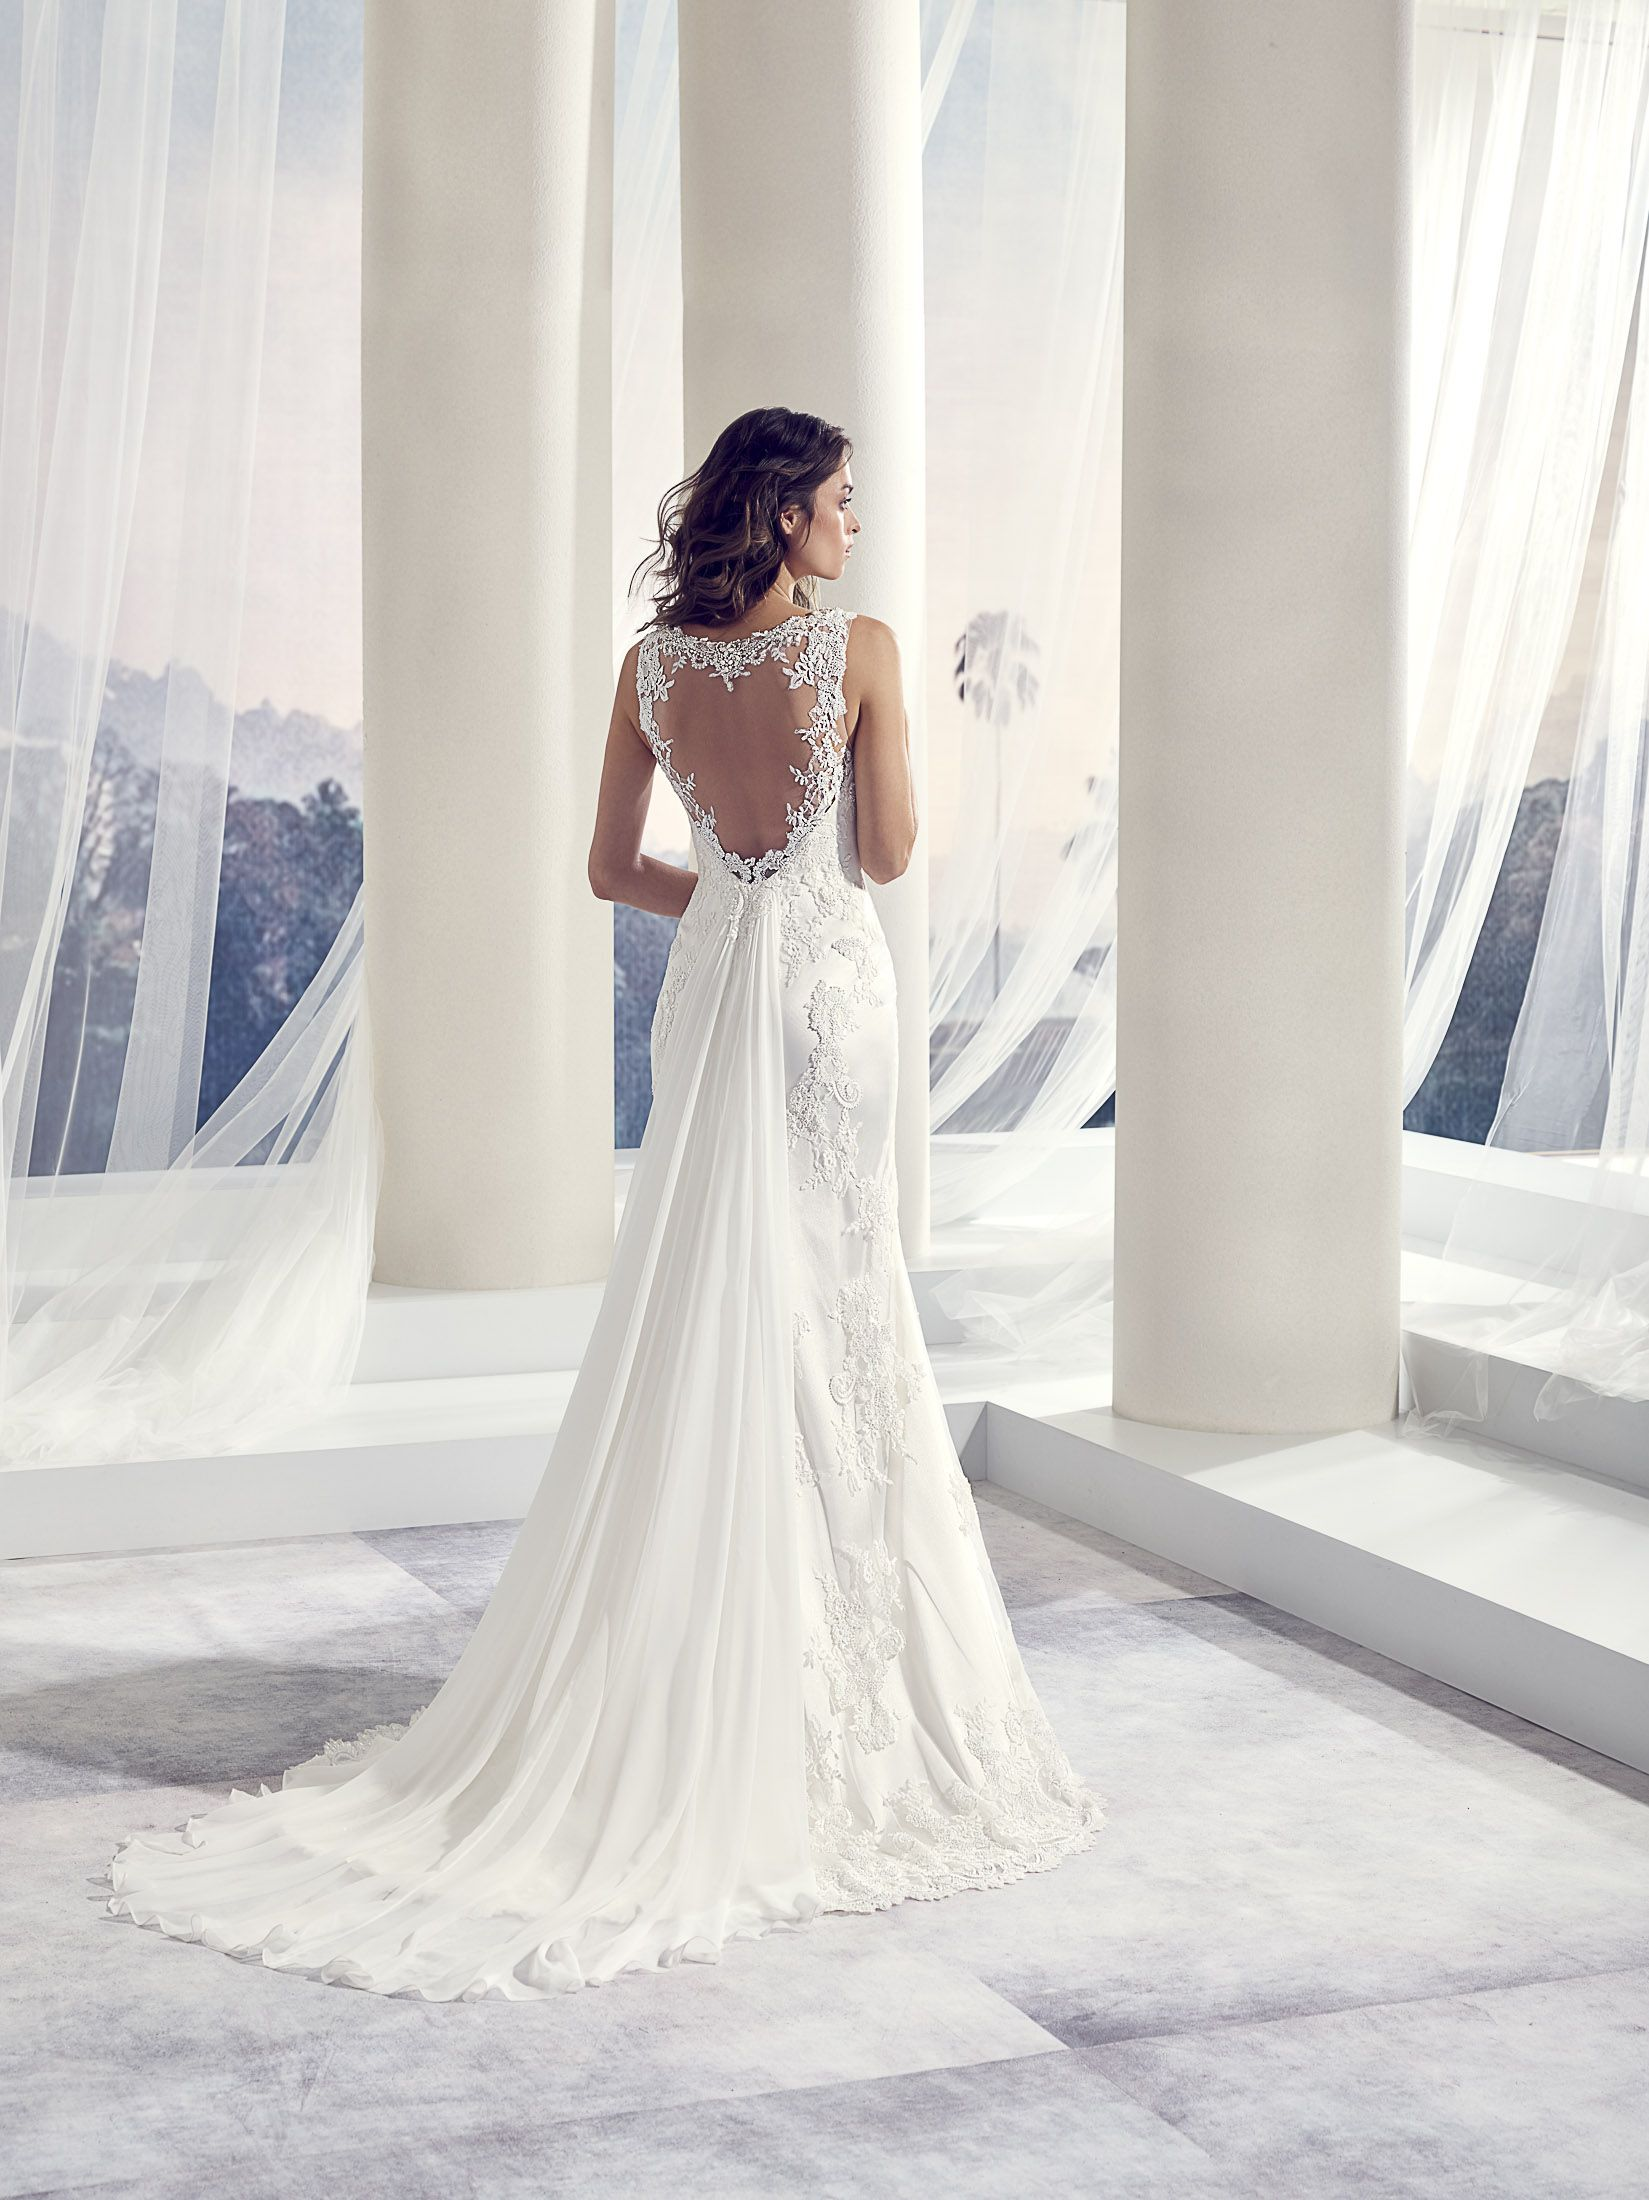 Where Can I Sell My Wedding Dress In India Ficts